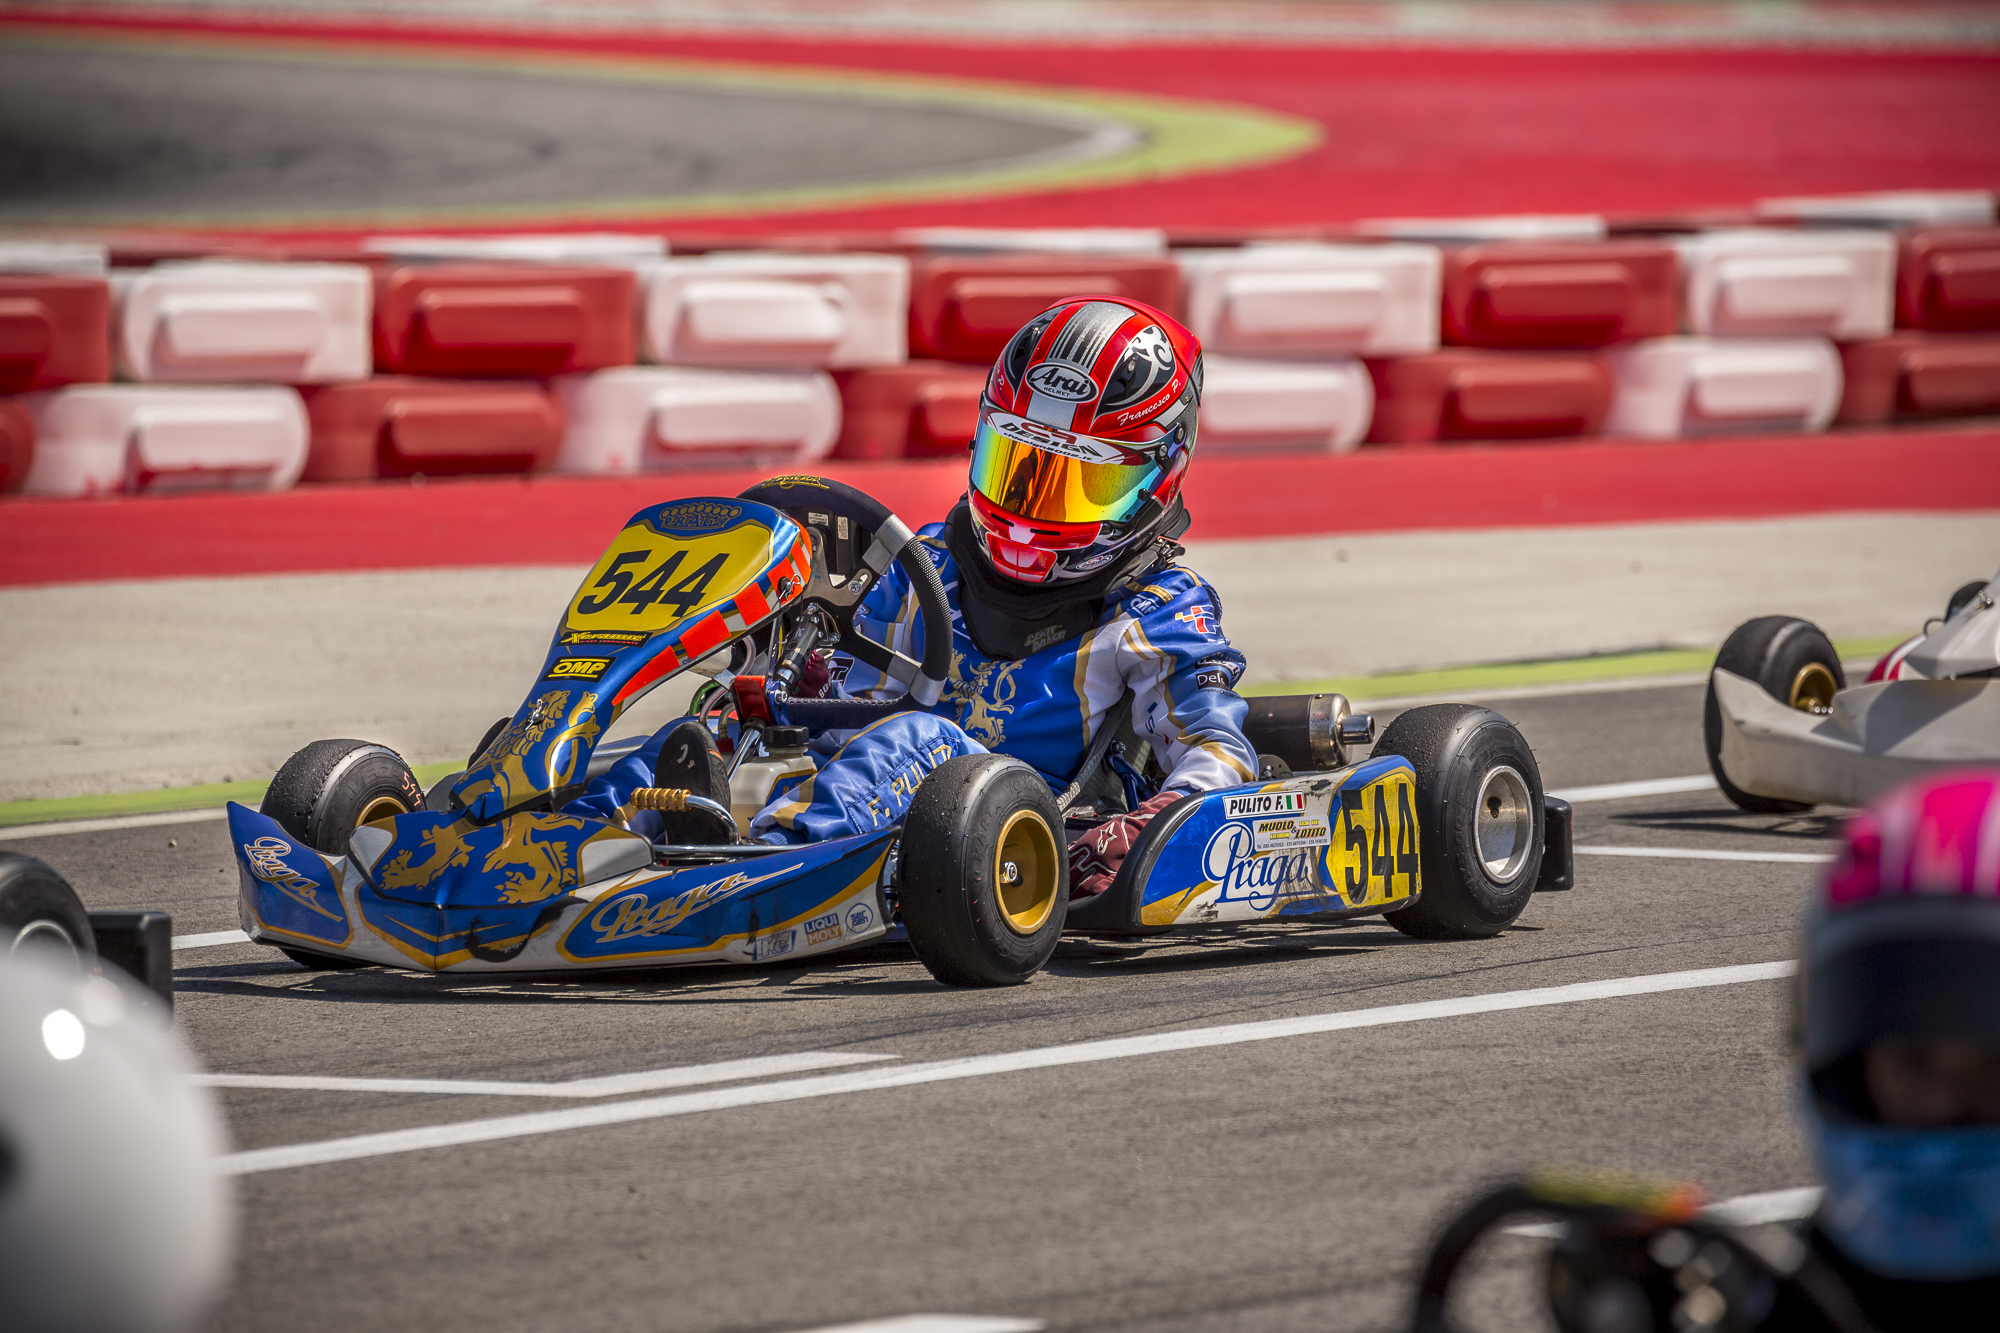 4th position at WSK Super Master Series Round 4